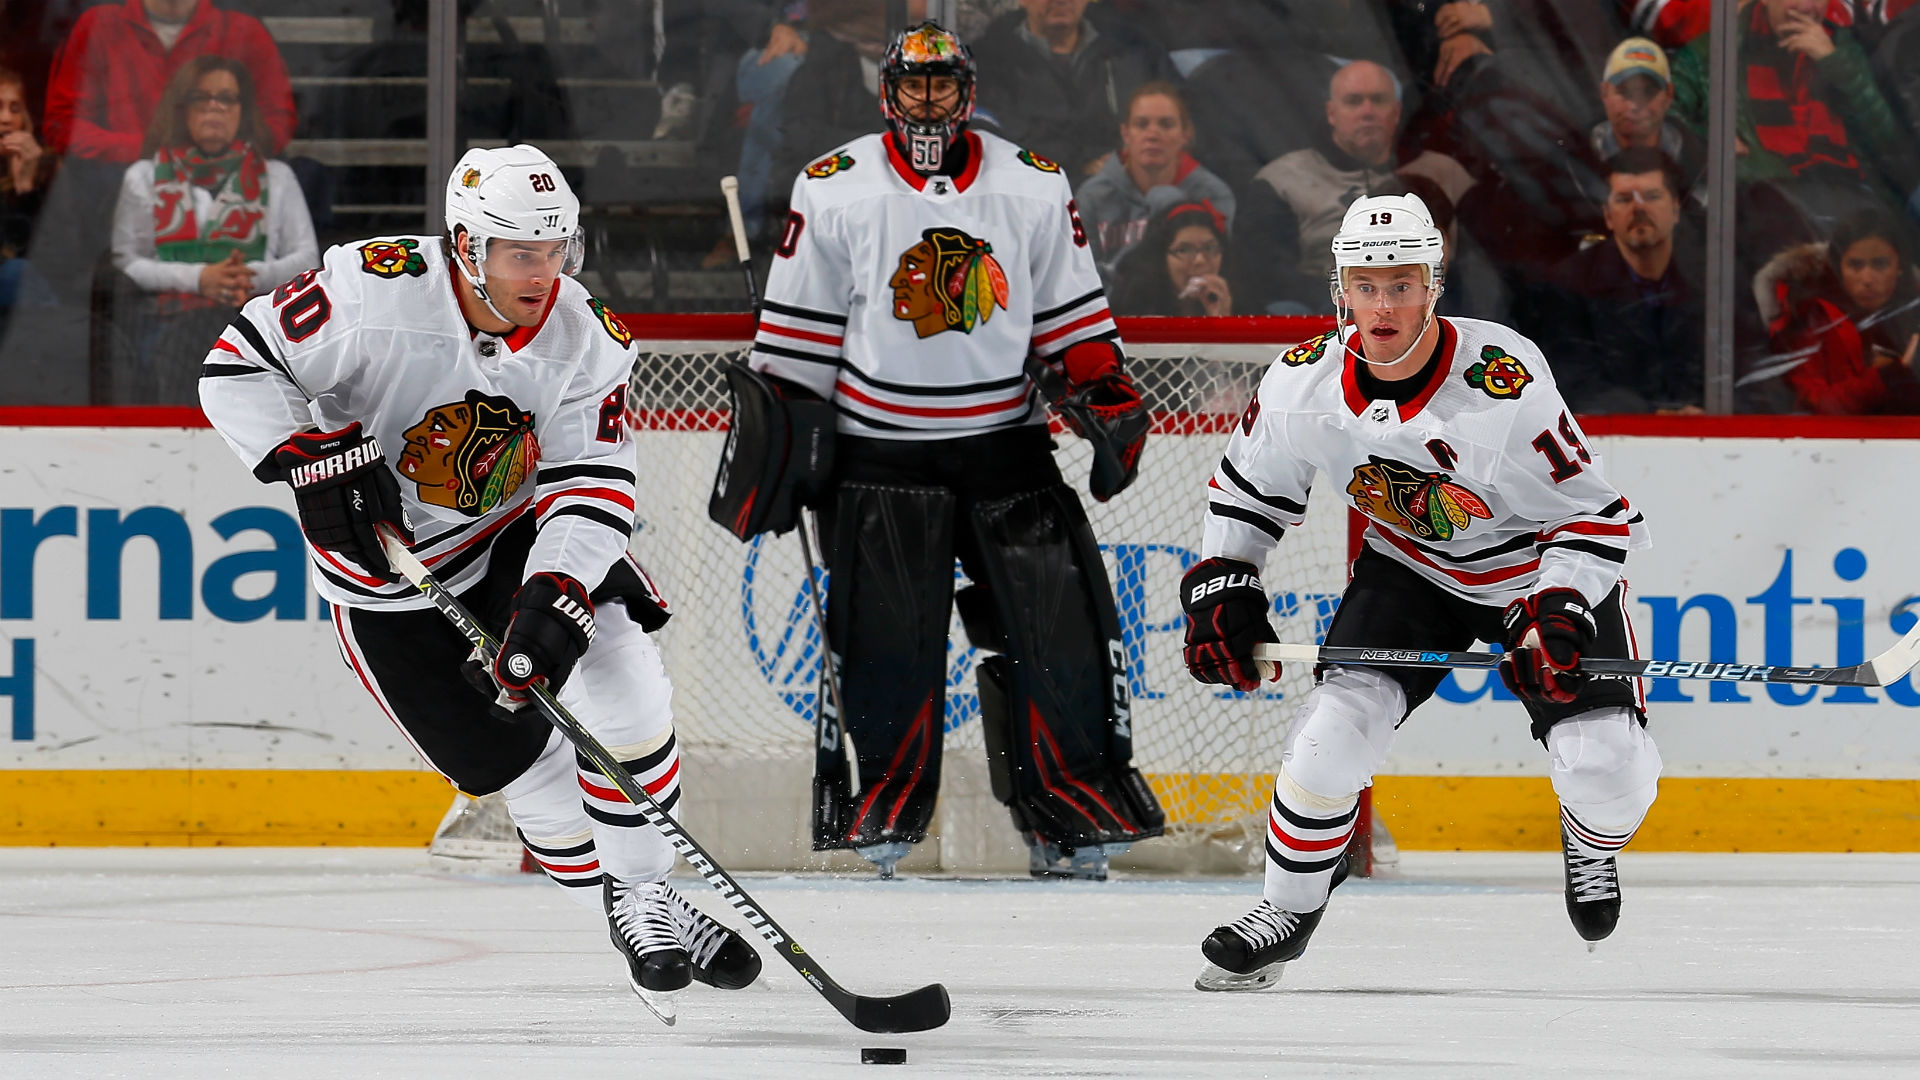 Crawford-saad-toews-011818-getty-ftrjpg_13zp7e4zwz3o21d5u0f40pbkwj